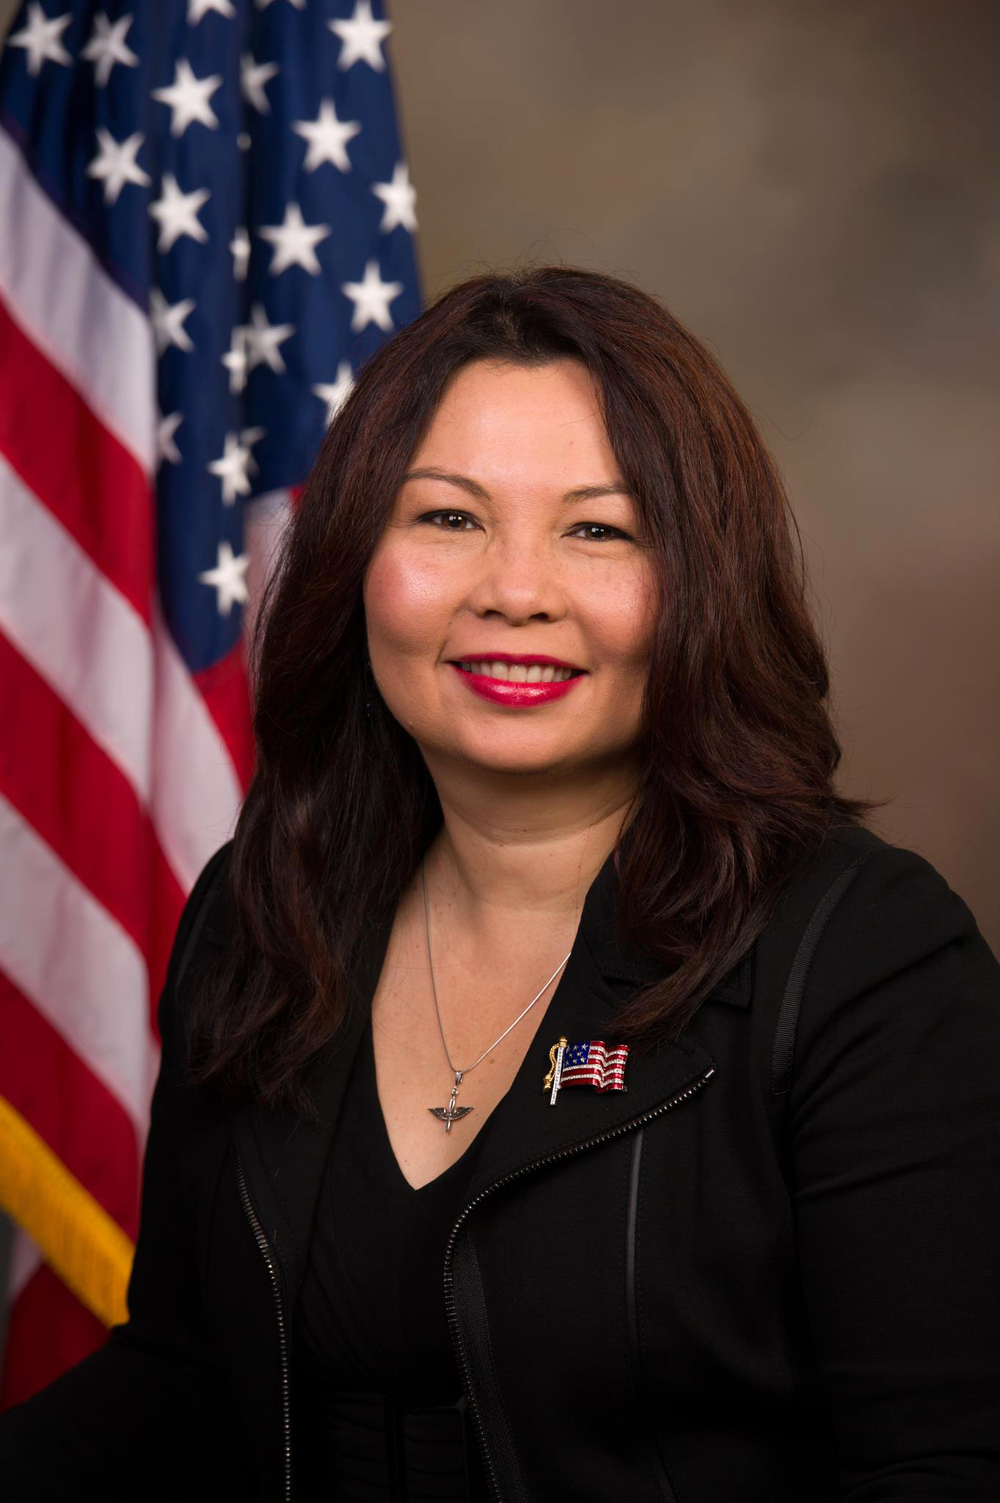 Congresswoman Tammy Duckworth (D) Representing Illinois 8th District Co-Sponsor of H.R. 3687 Cuba Agricultural Exports Act